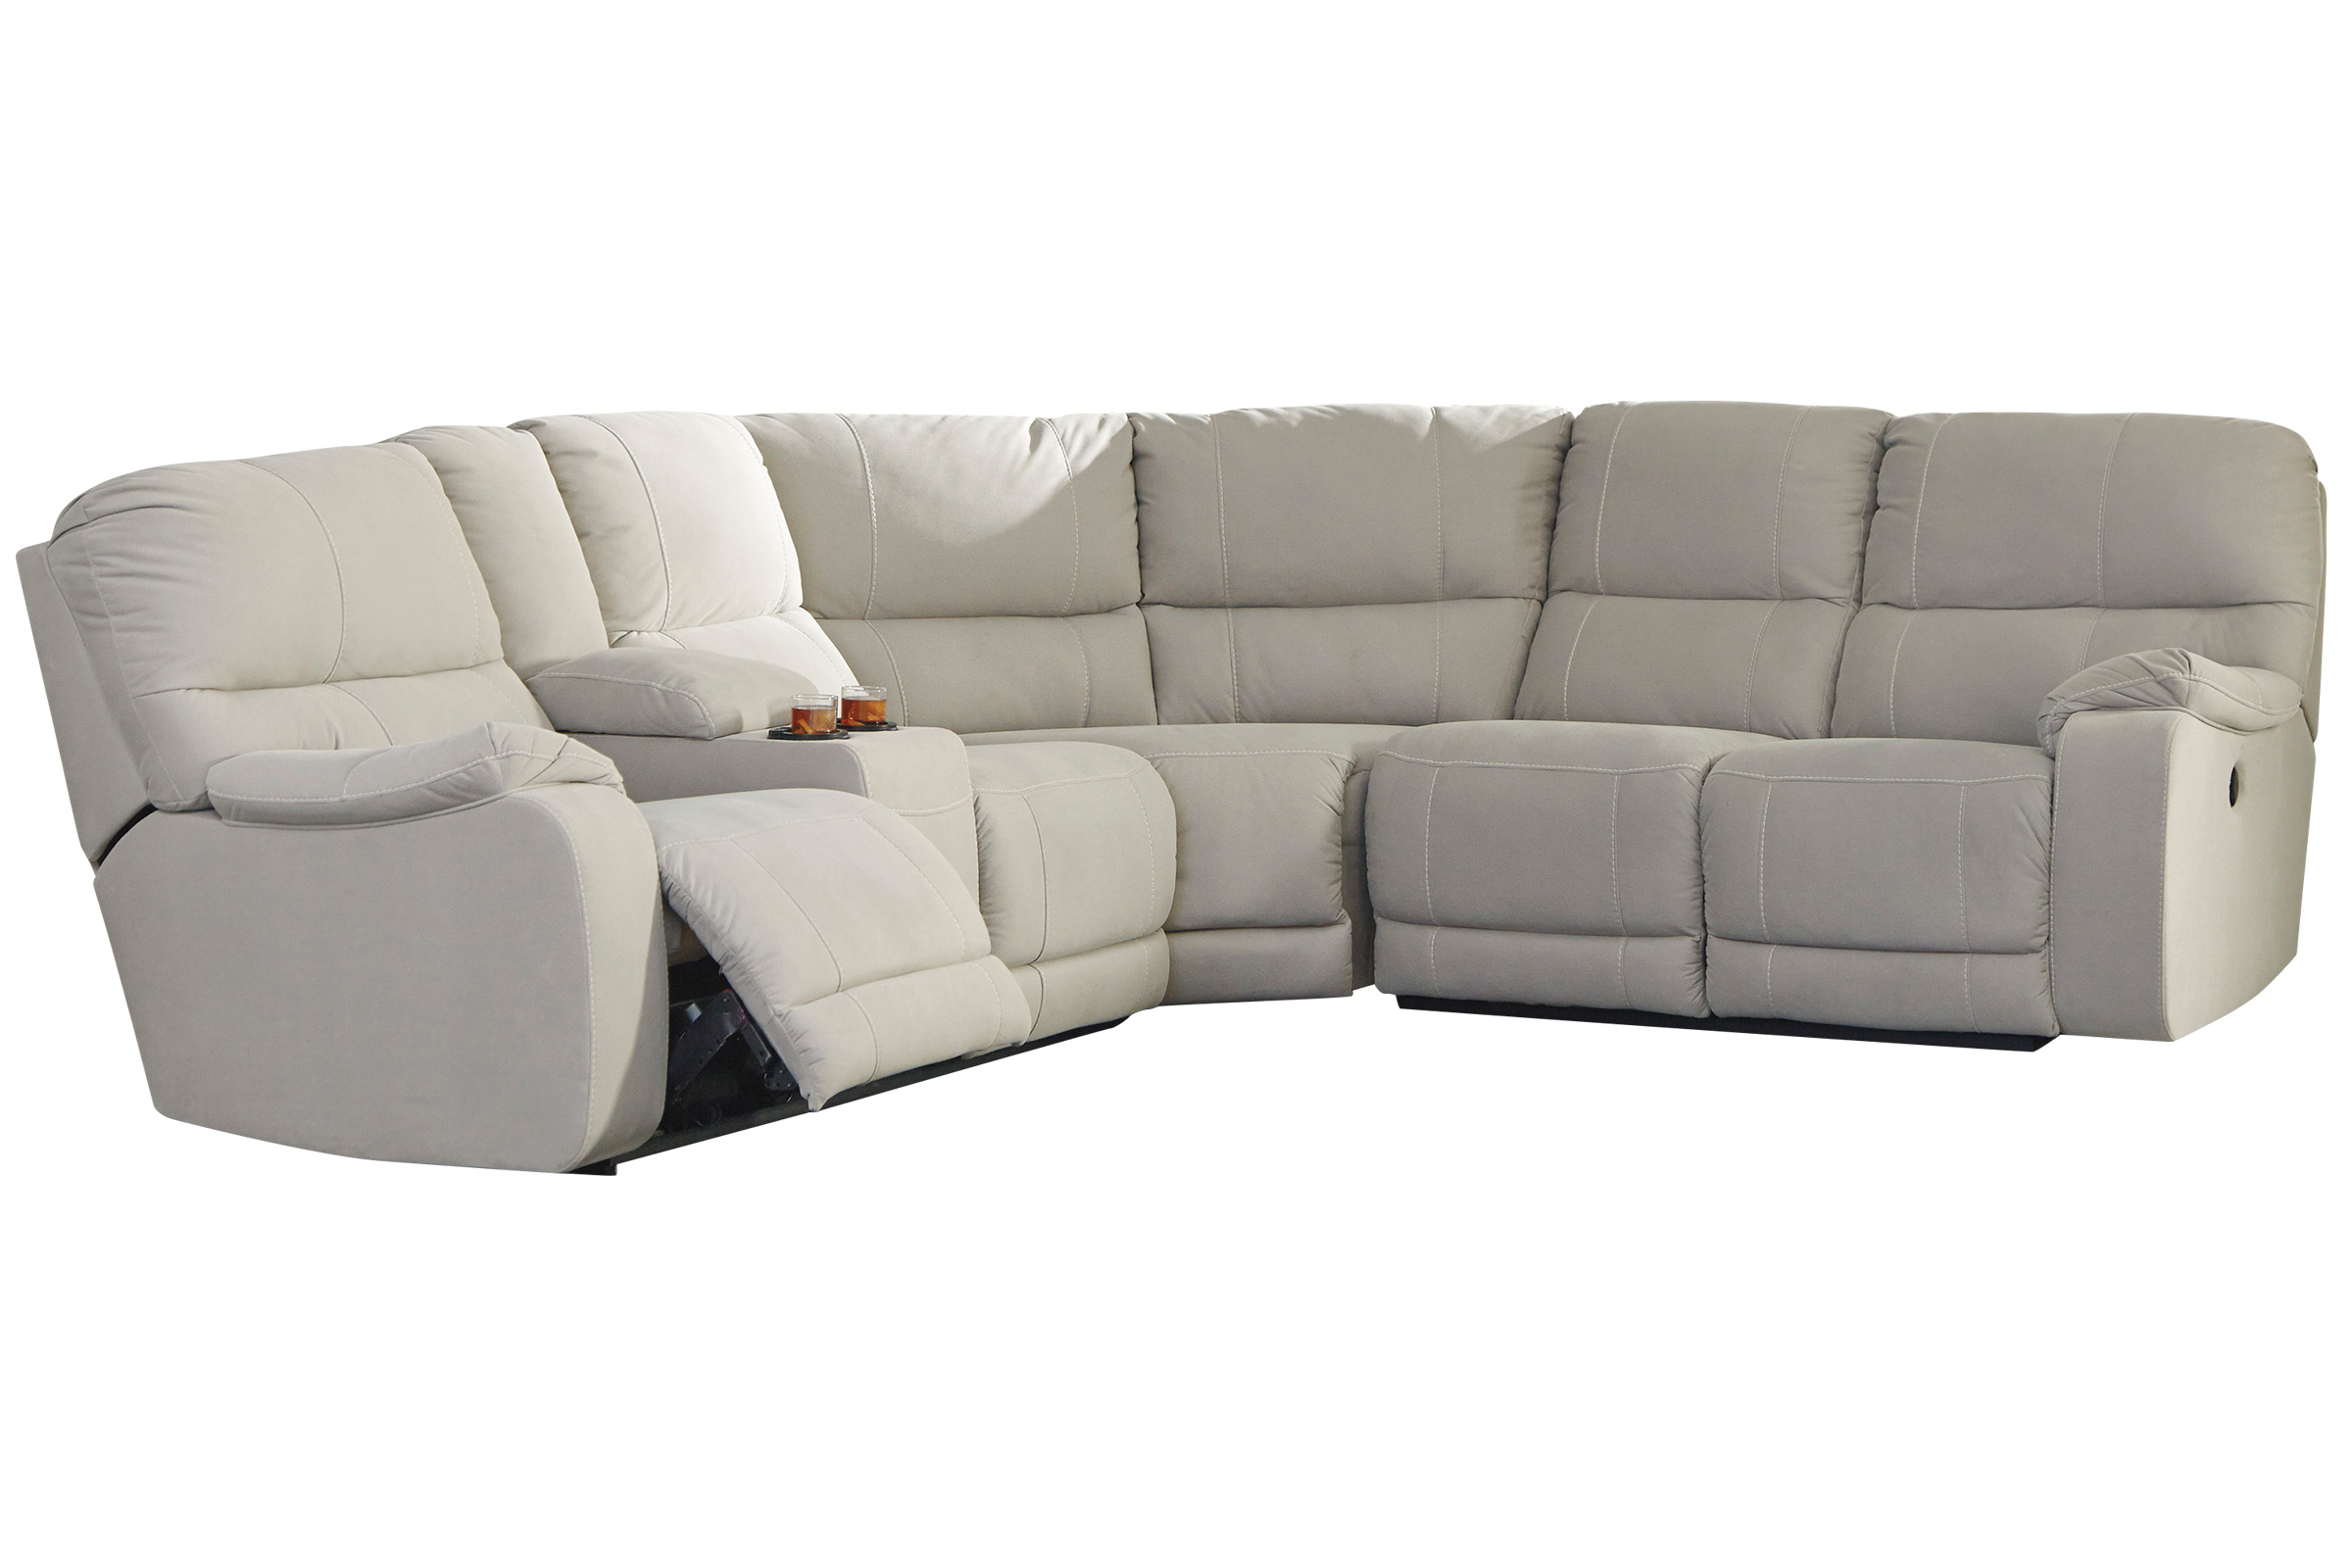 Gypsy Four piece Left Arm Sectional